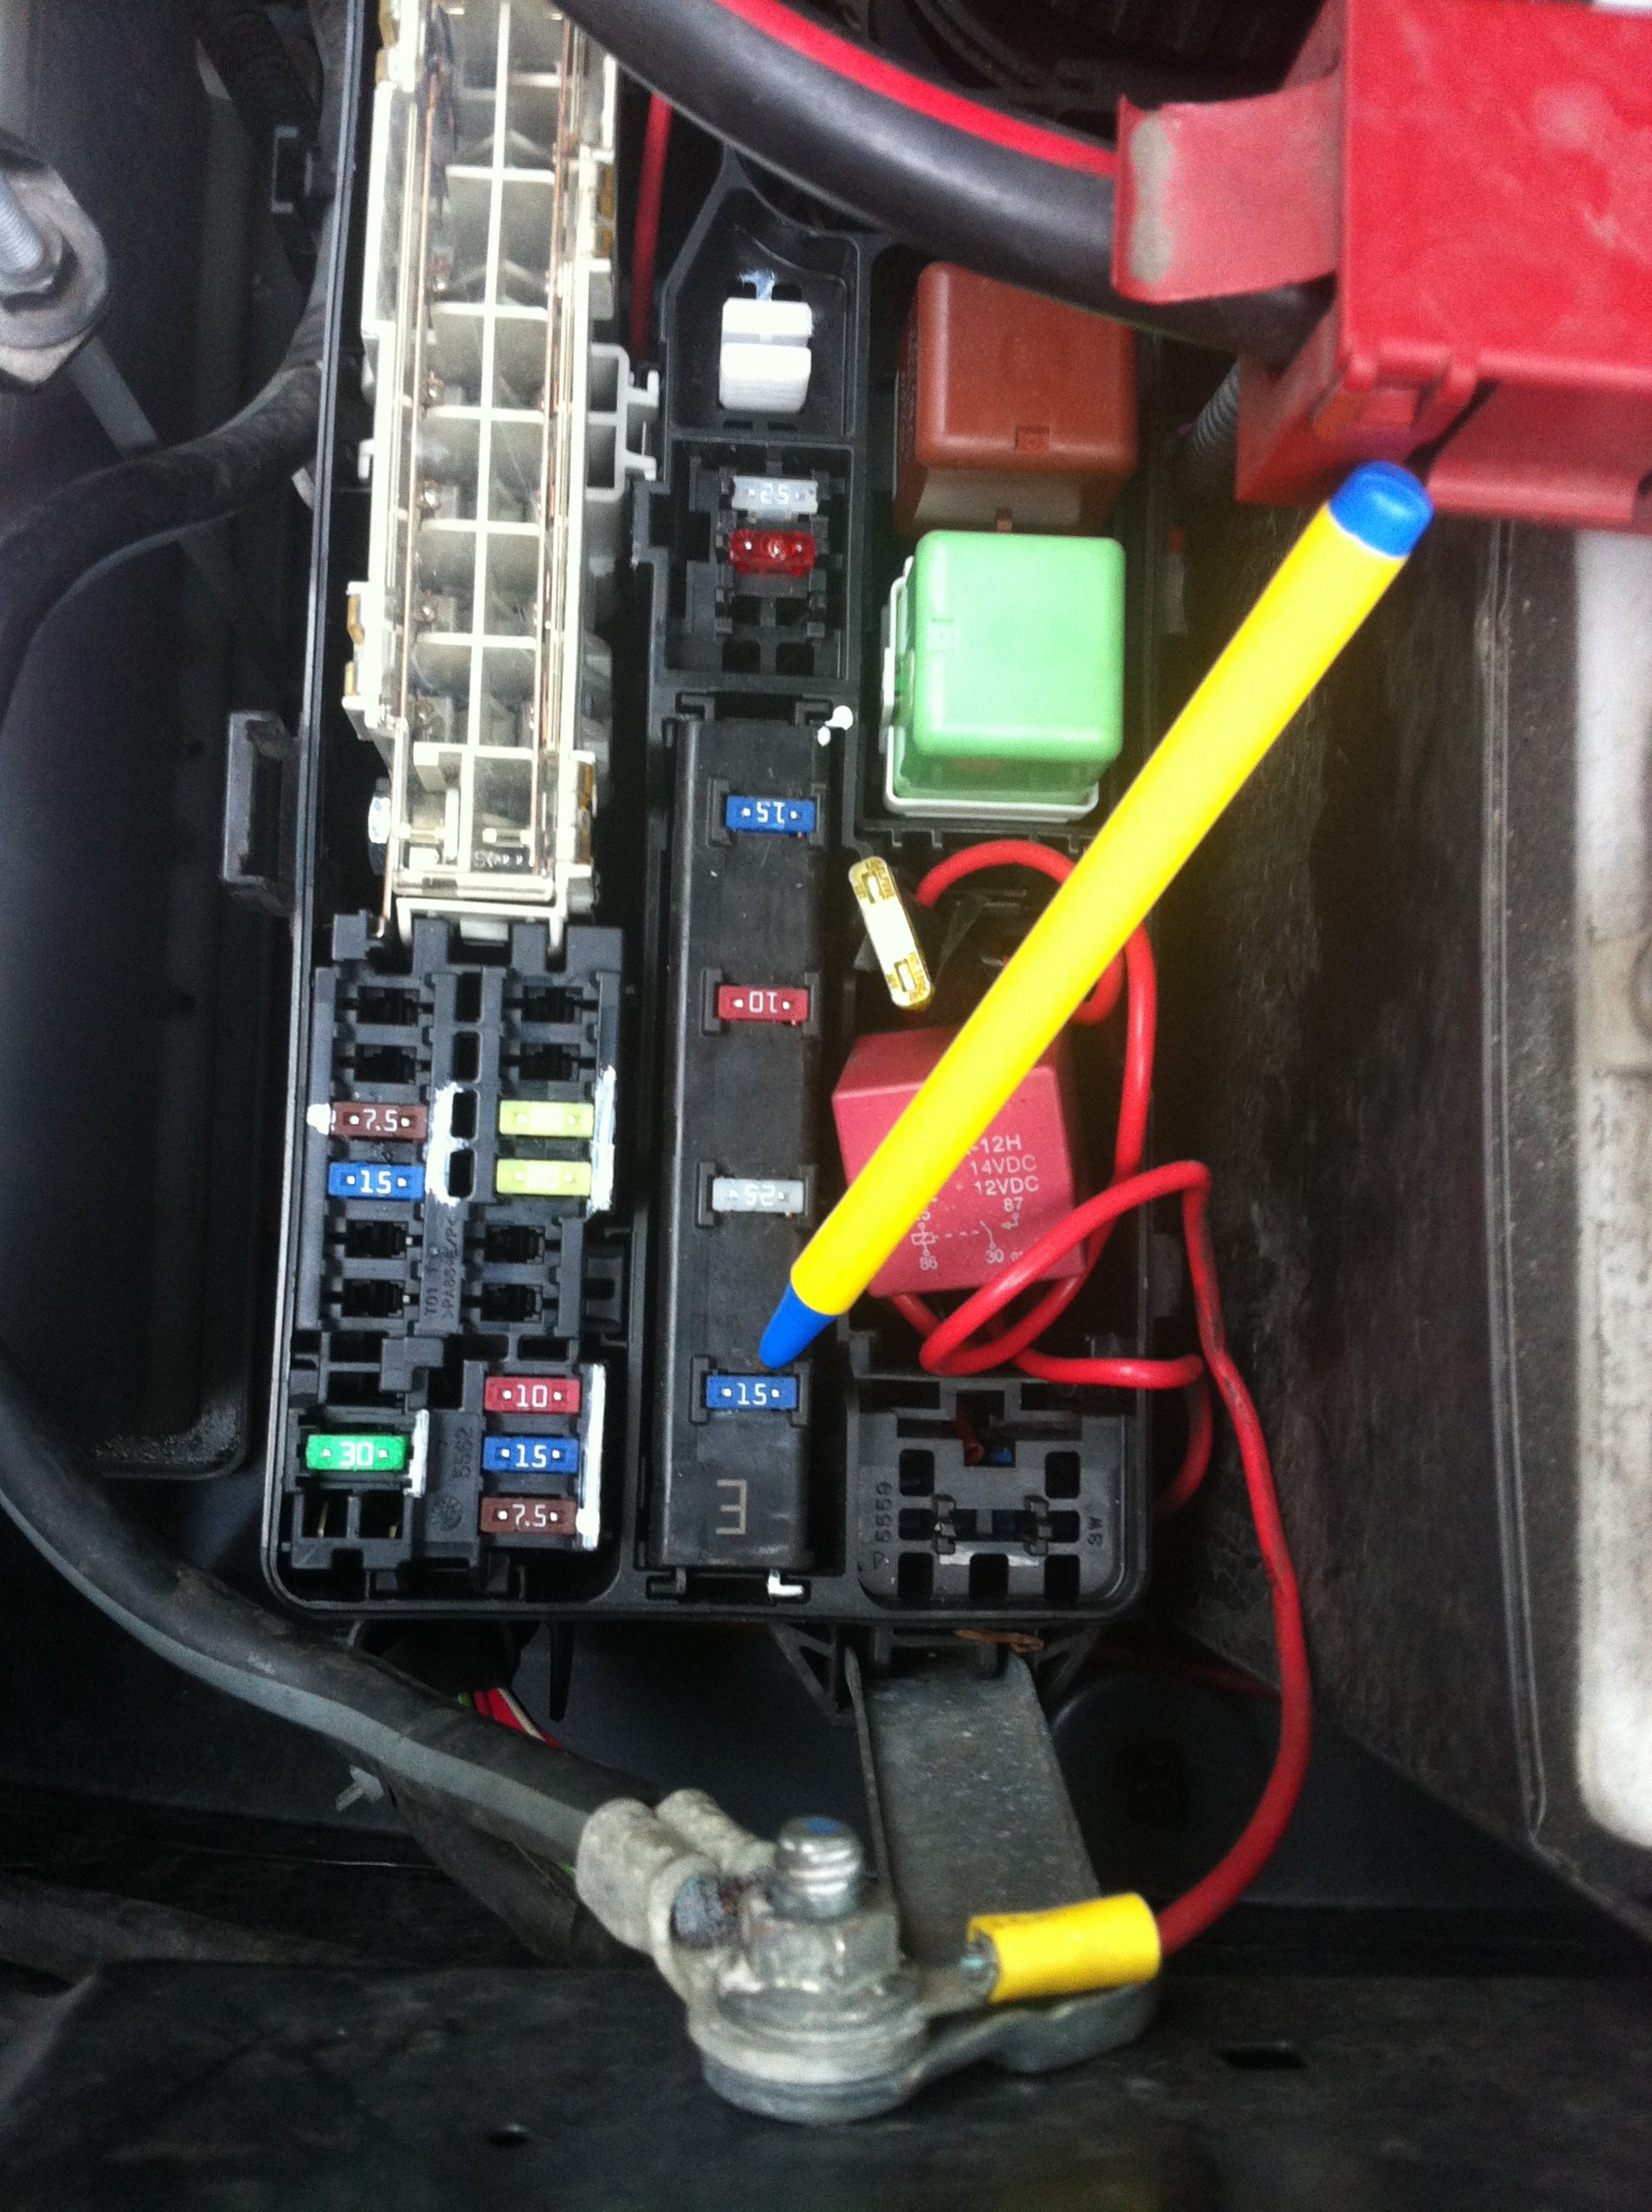 2004 Passat 4motion Fuse Box Diagram 2010 Corvette Location List Of Schematic Circuit 2007 Prius Auto Electrical Wiring Rh Psu Edu Co Fr Bitoku Me